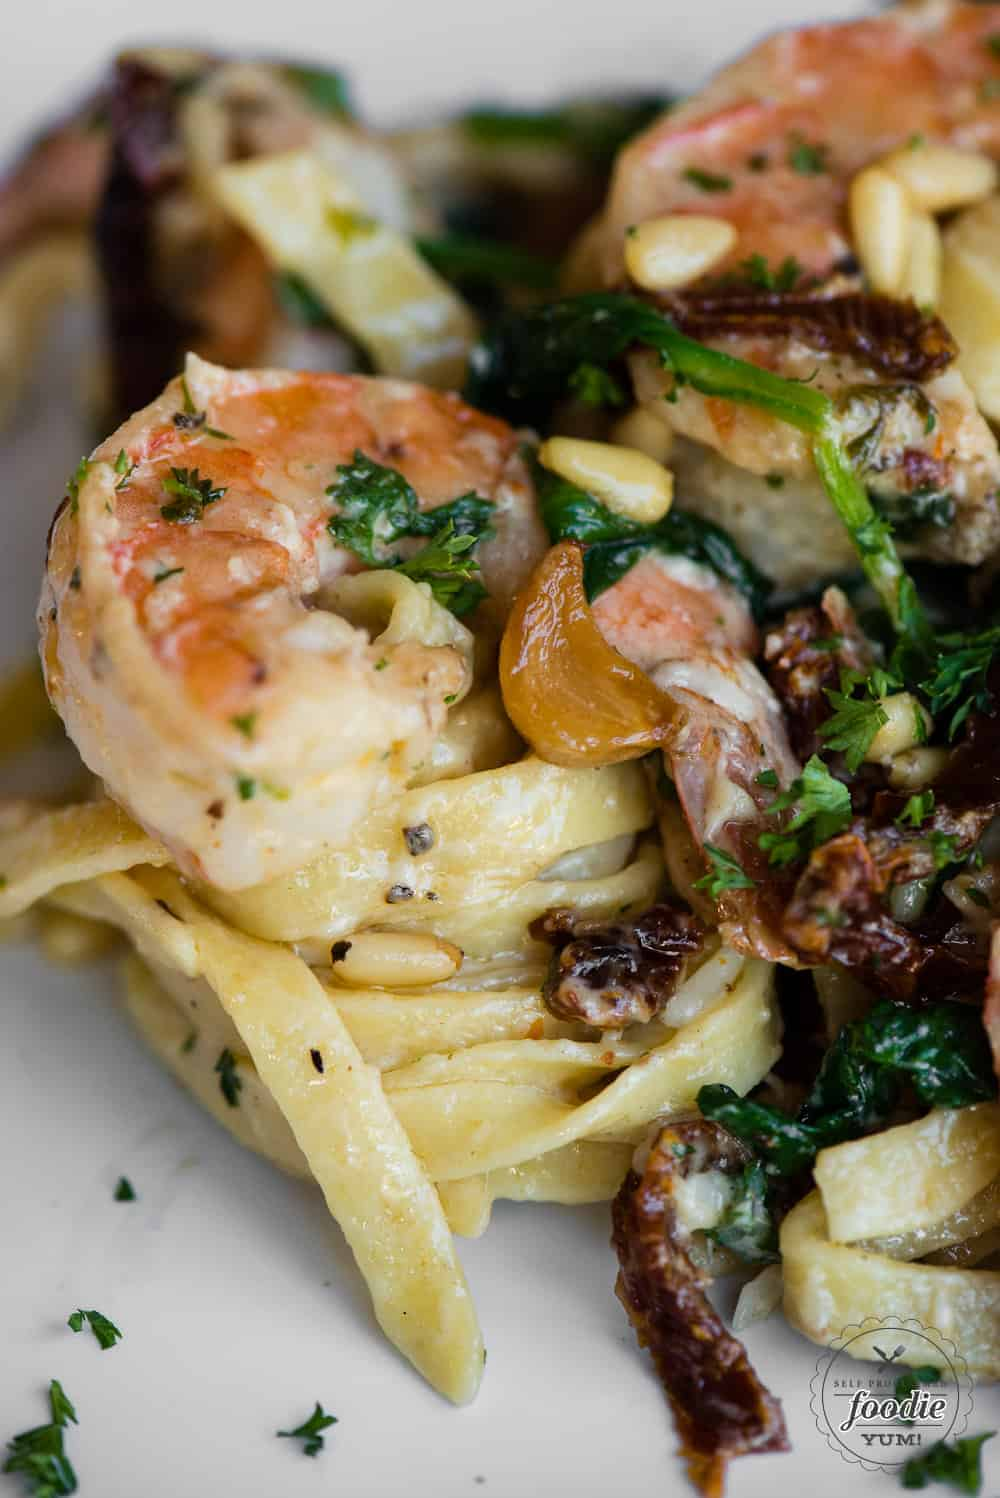 Creamy Sundried Tomato Shrimp Pasta Recipe